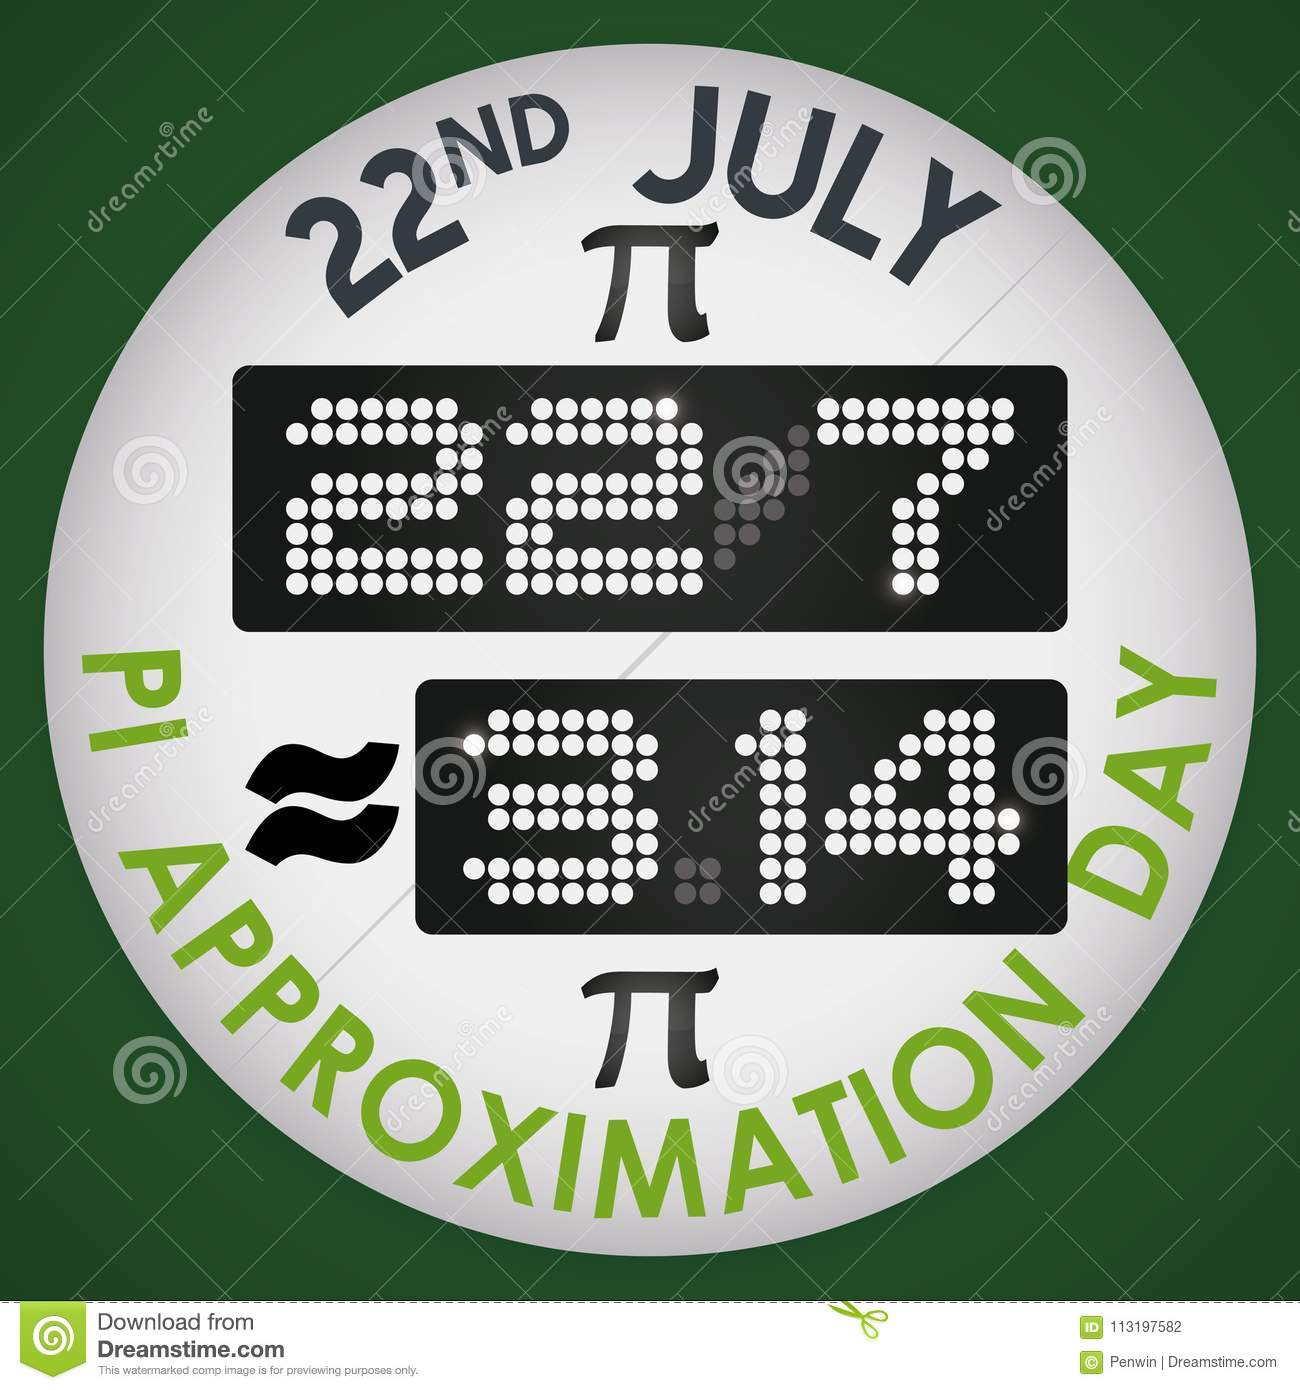 Pin With Digital Display For Pi Approximation Day Vector